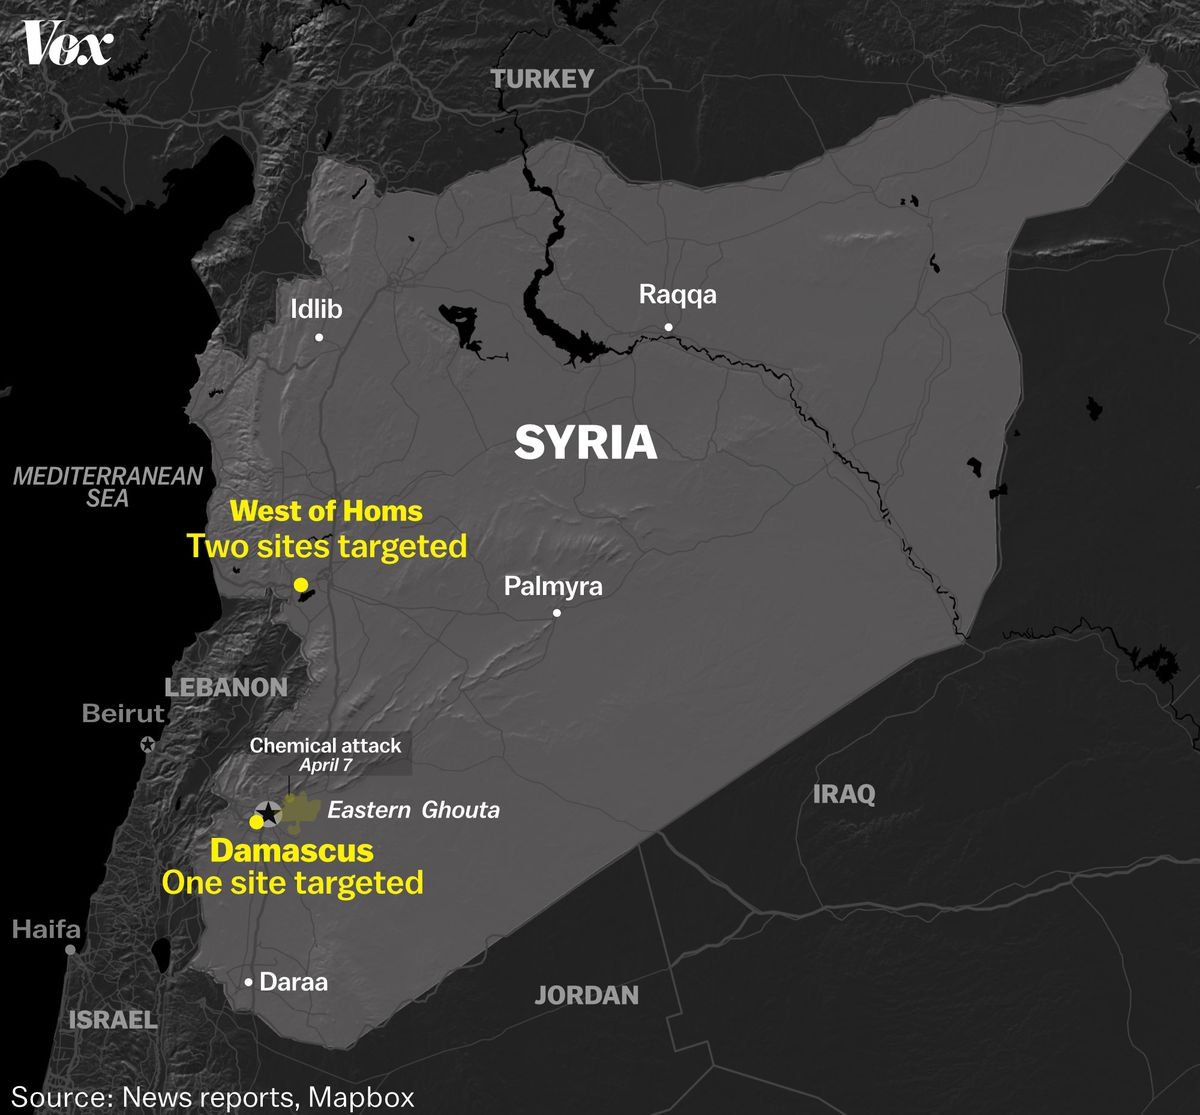 Us Attack On Syria Is Meant To Punish It For A Chemical Attack Vox